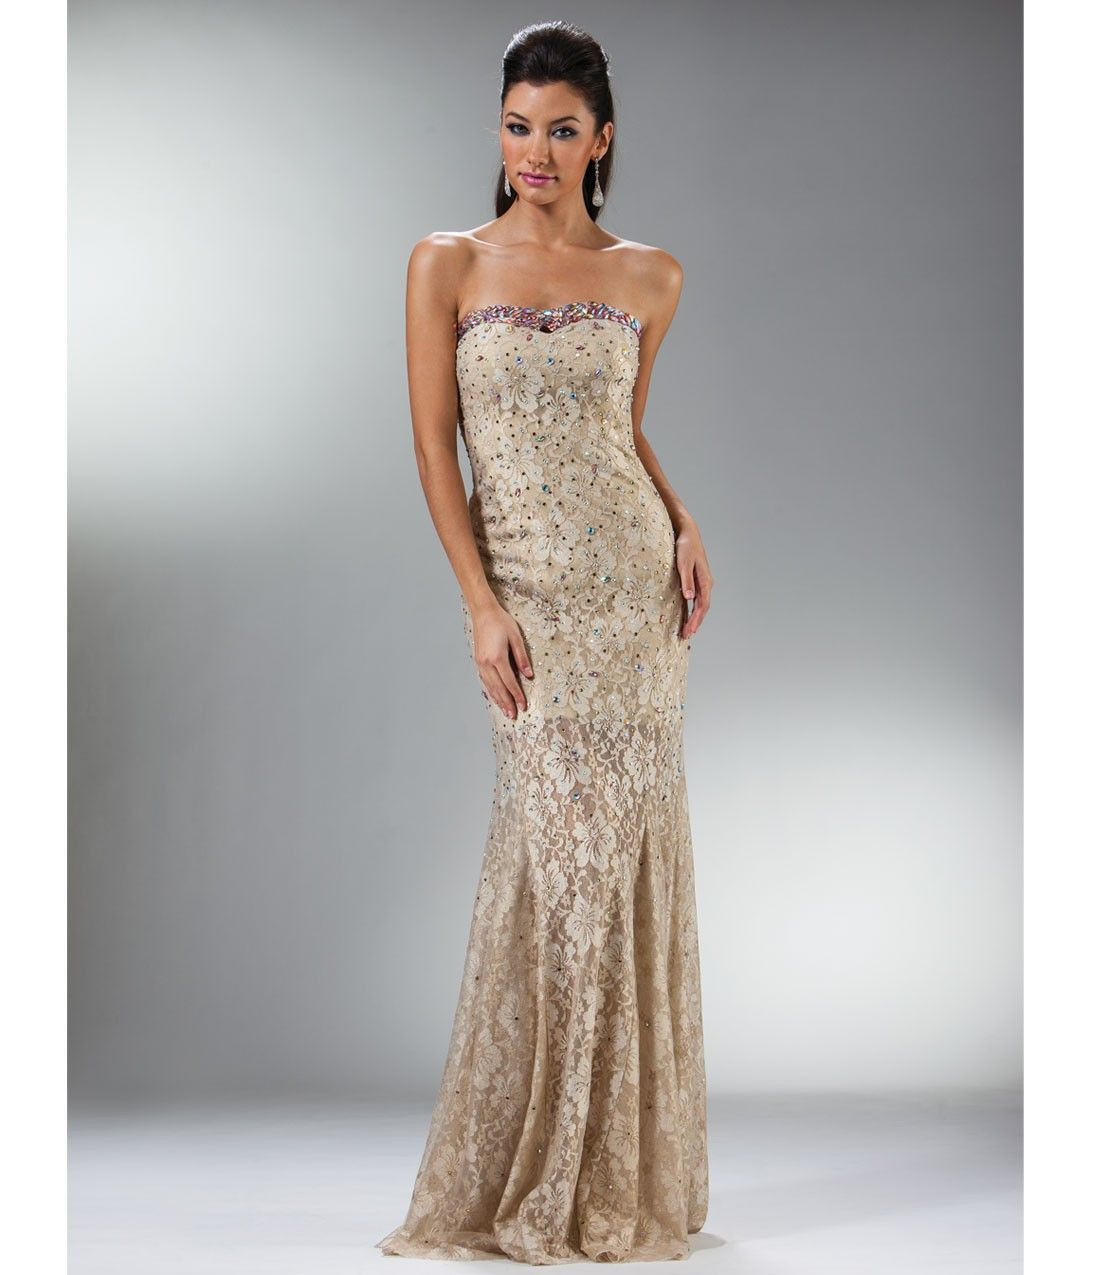 Prom_Dresses-Gold_Hibiscus_Lace_Mermaid_Gown | Aesthetic Gold ...